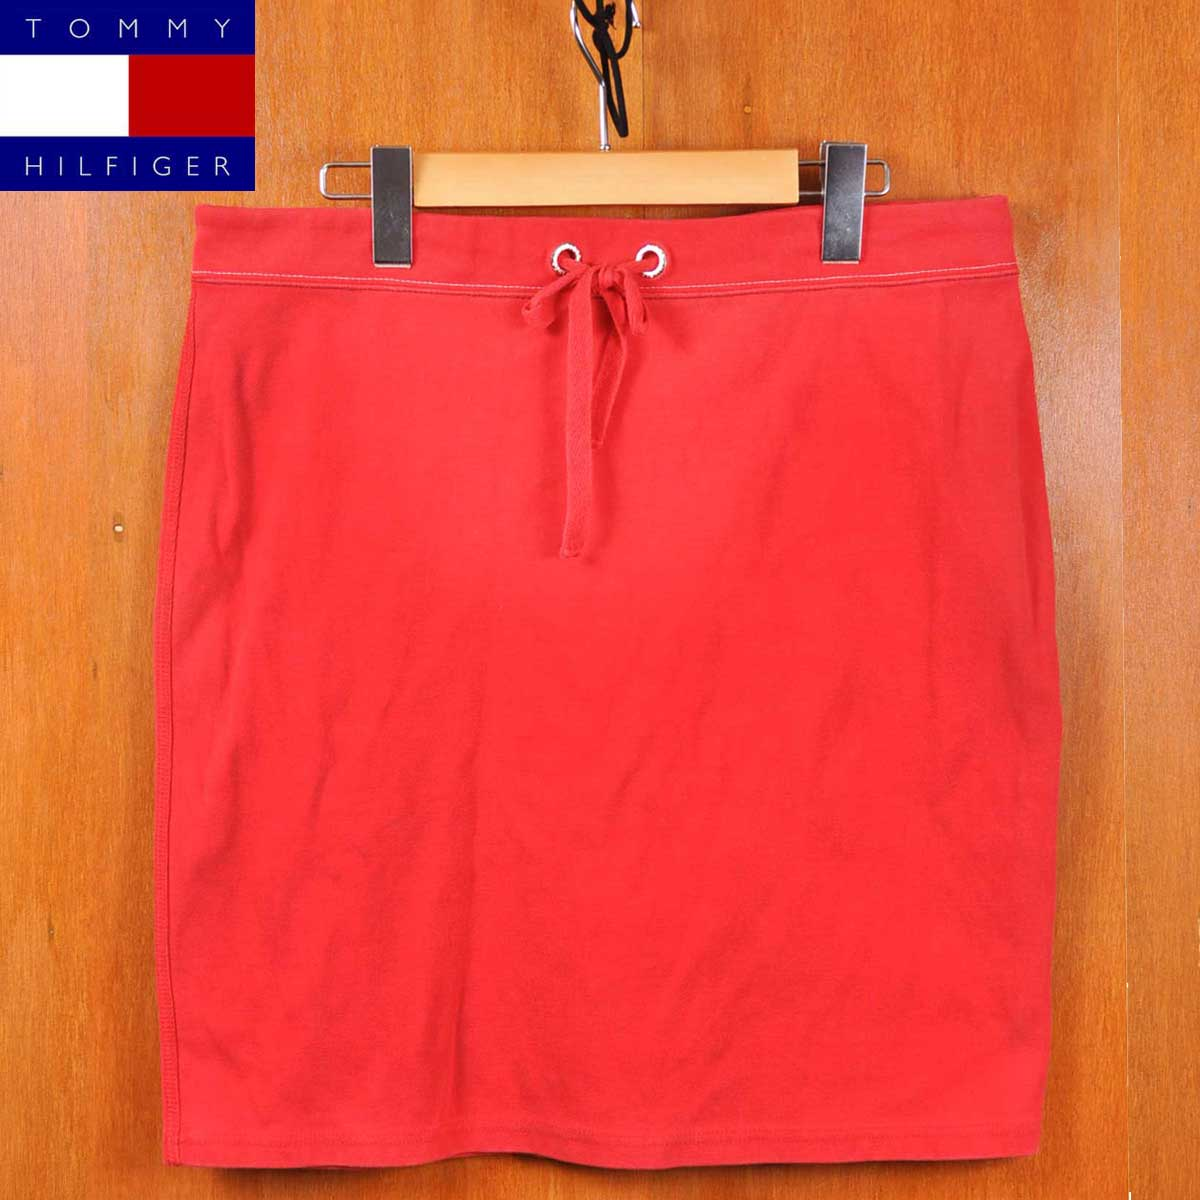 TOMMY HILFIGER Tommy Hilfiger / sweets cart / red / women's size L: